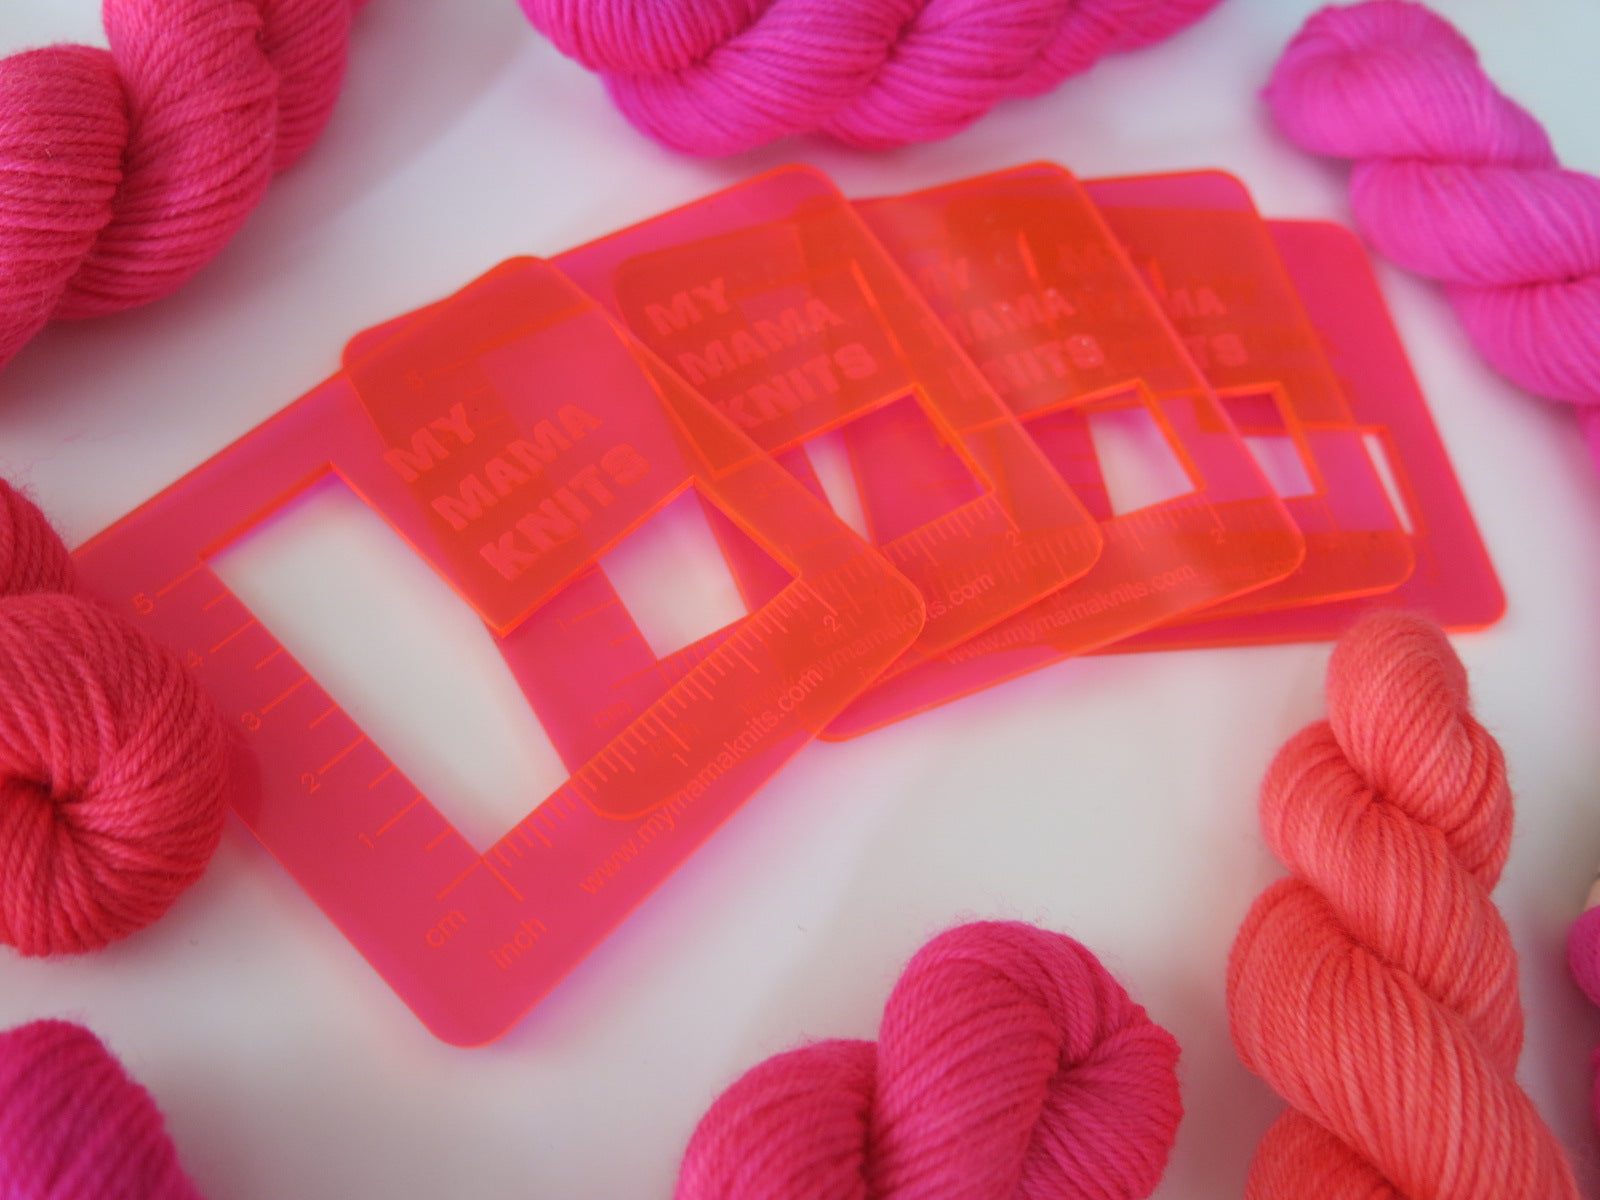 katrinkles acrylic swatch rulers in neon pink orange for knitting and crochet